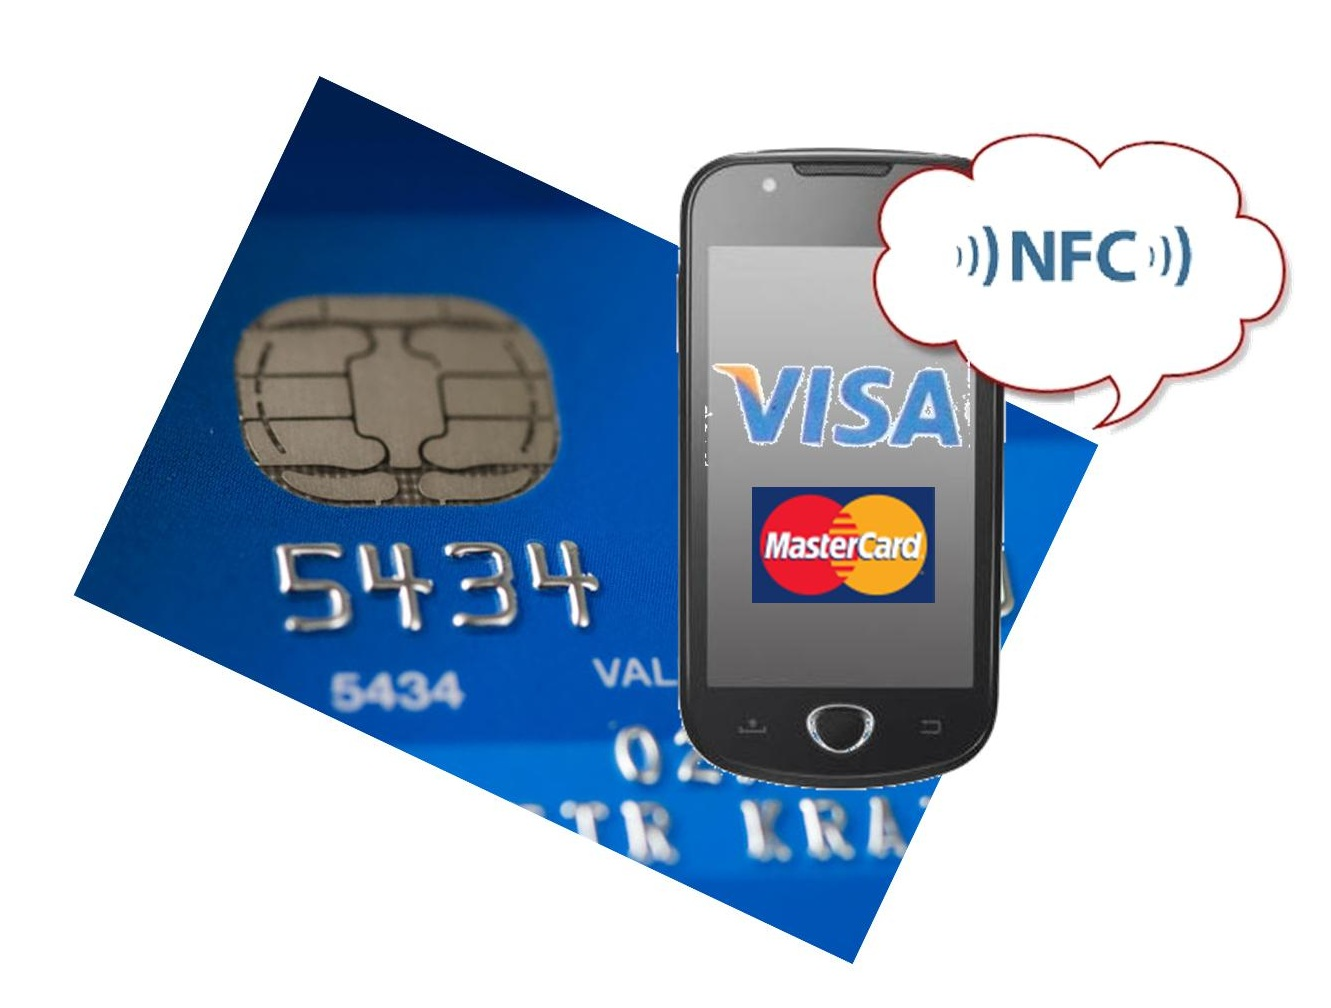 NFC Technology Major Credit Cards